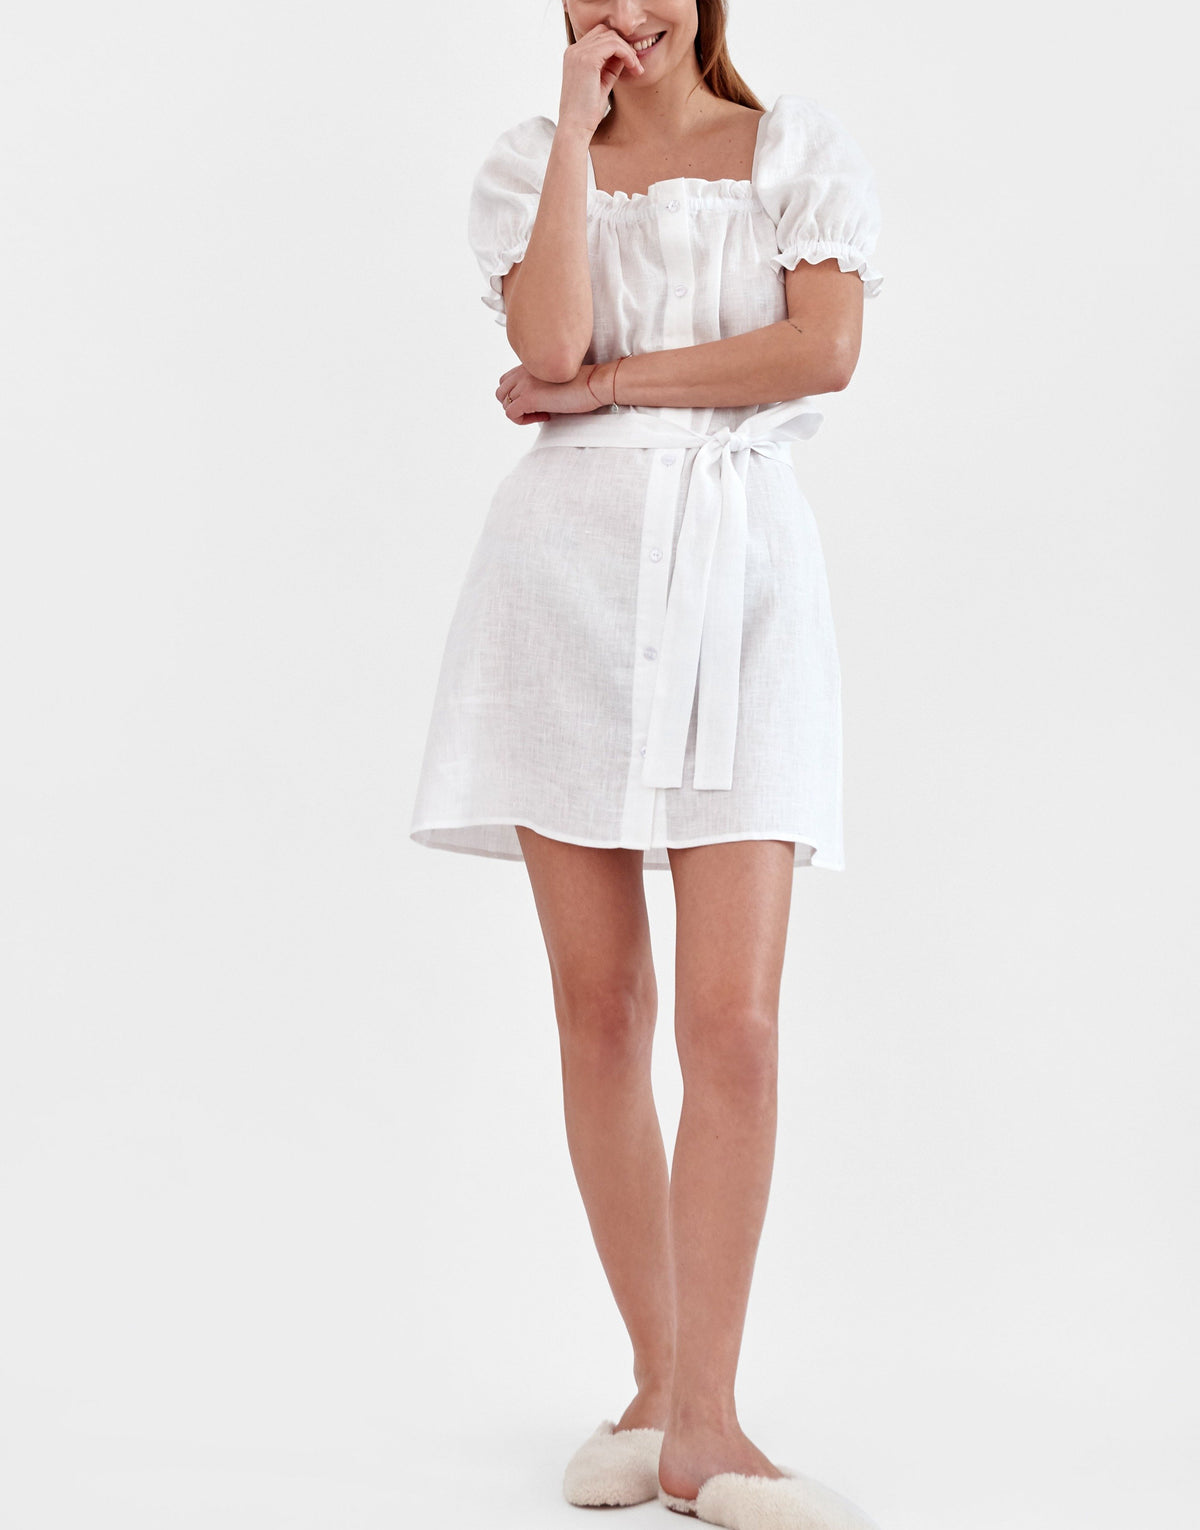 Brigitte Mini Dress in White